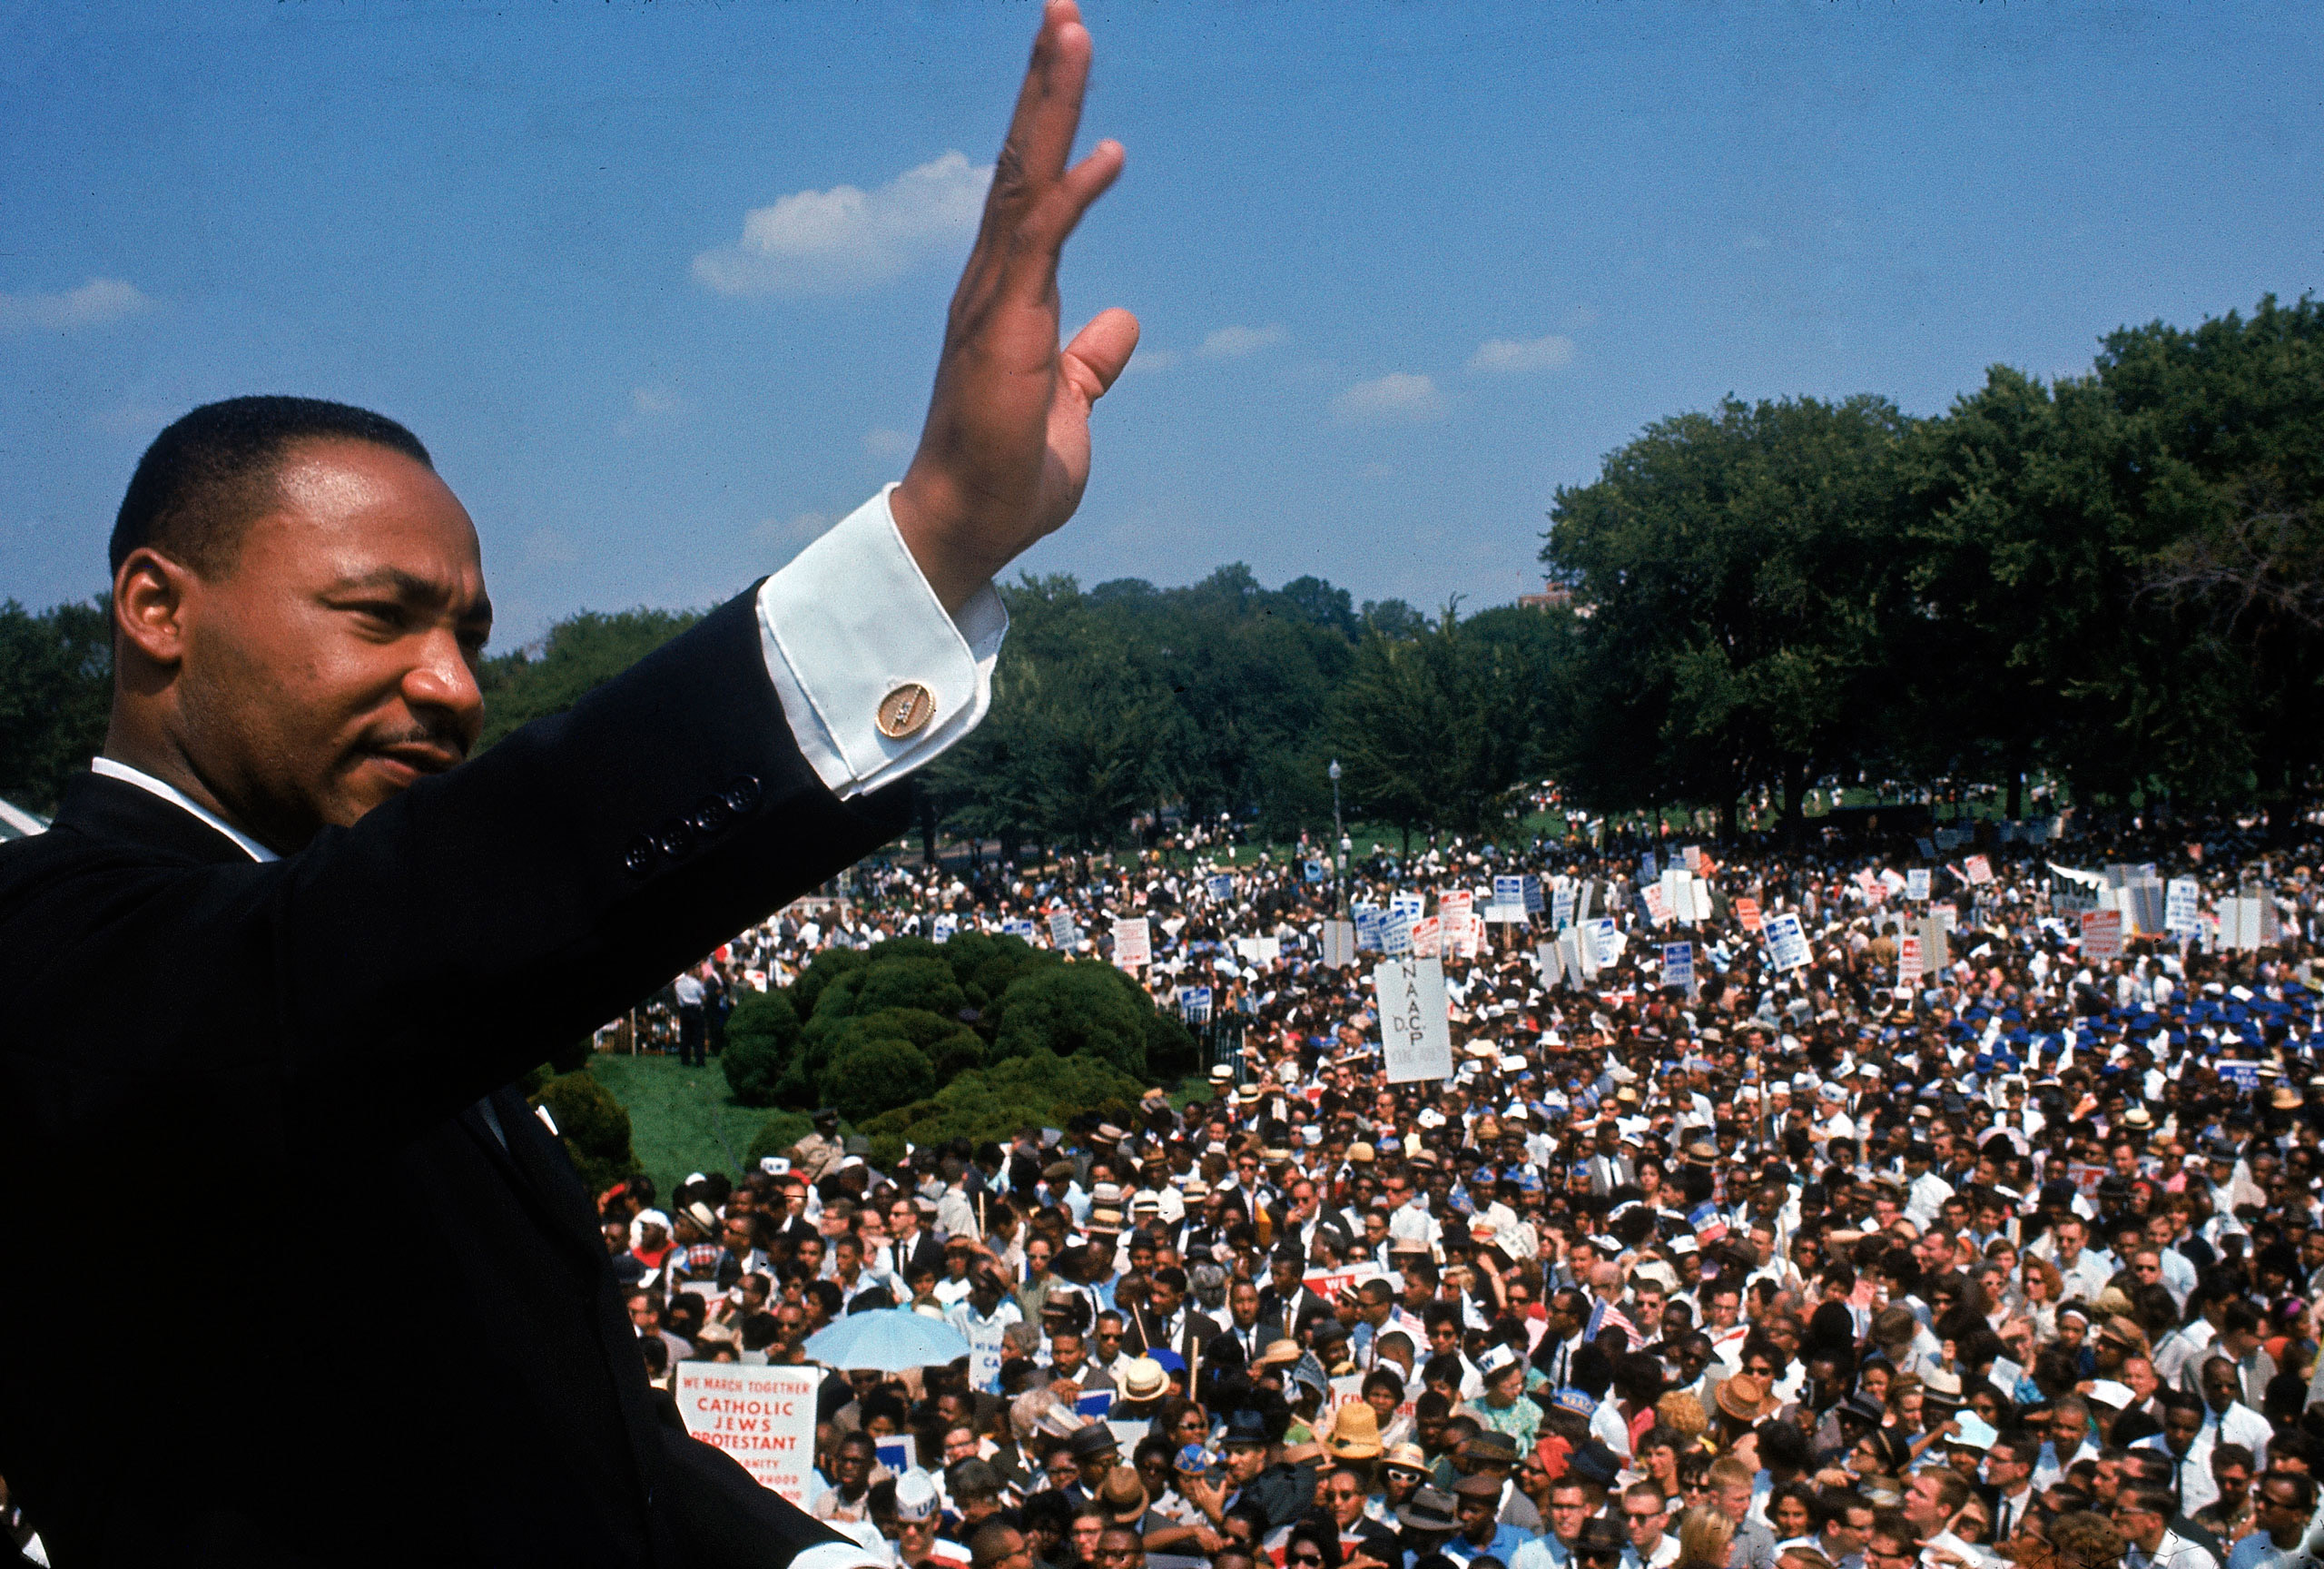 Martin Luther King Jr. addresses the crowd during the March on Washington for Jobs and Freedom, Aug. 28, 1963.